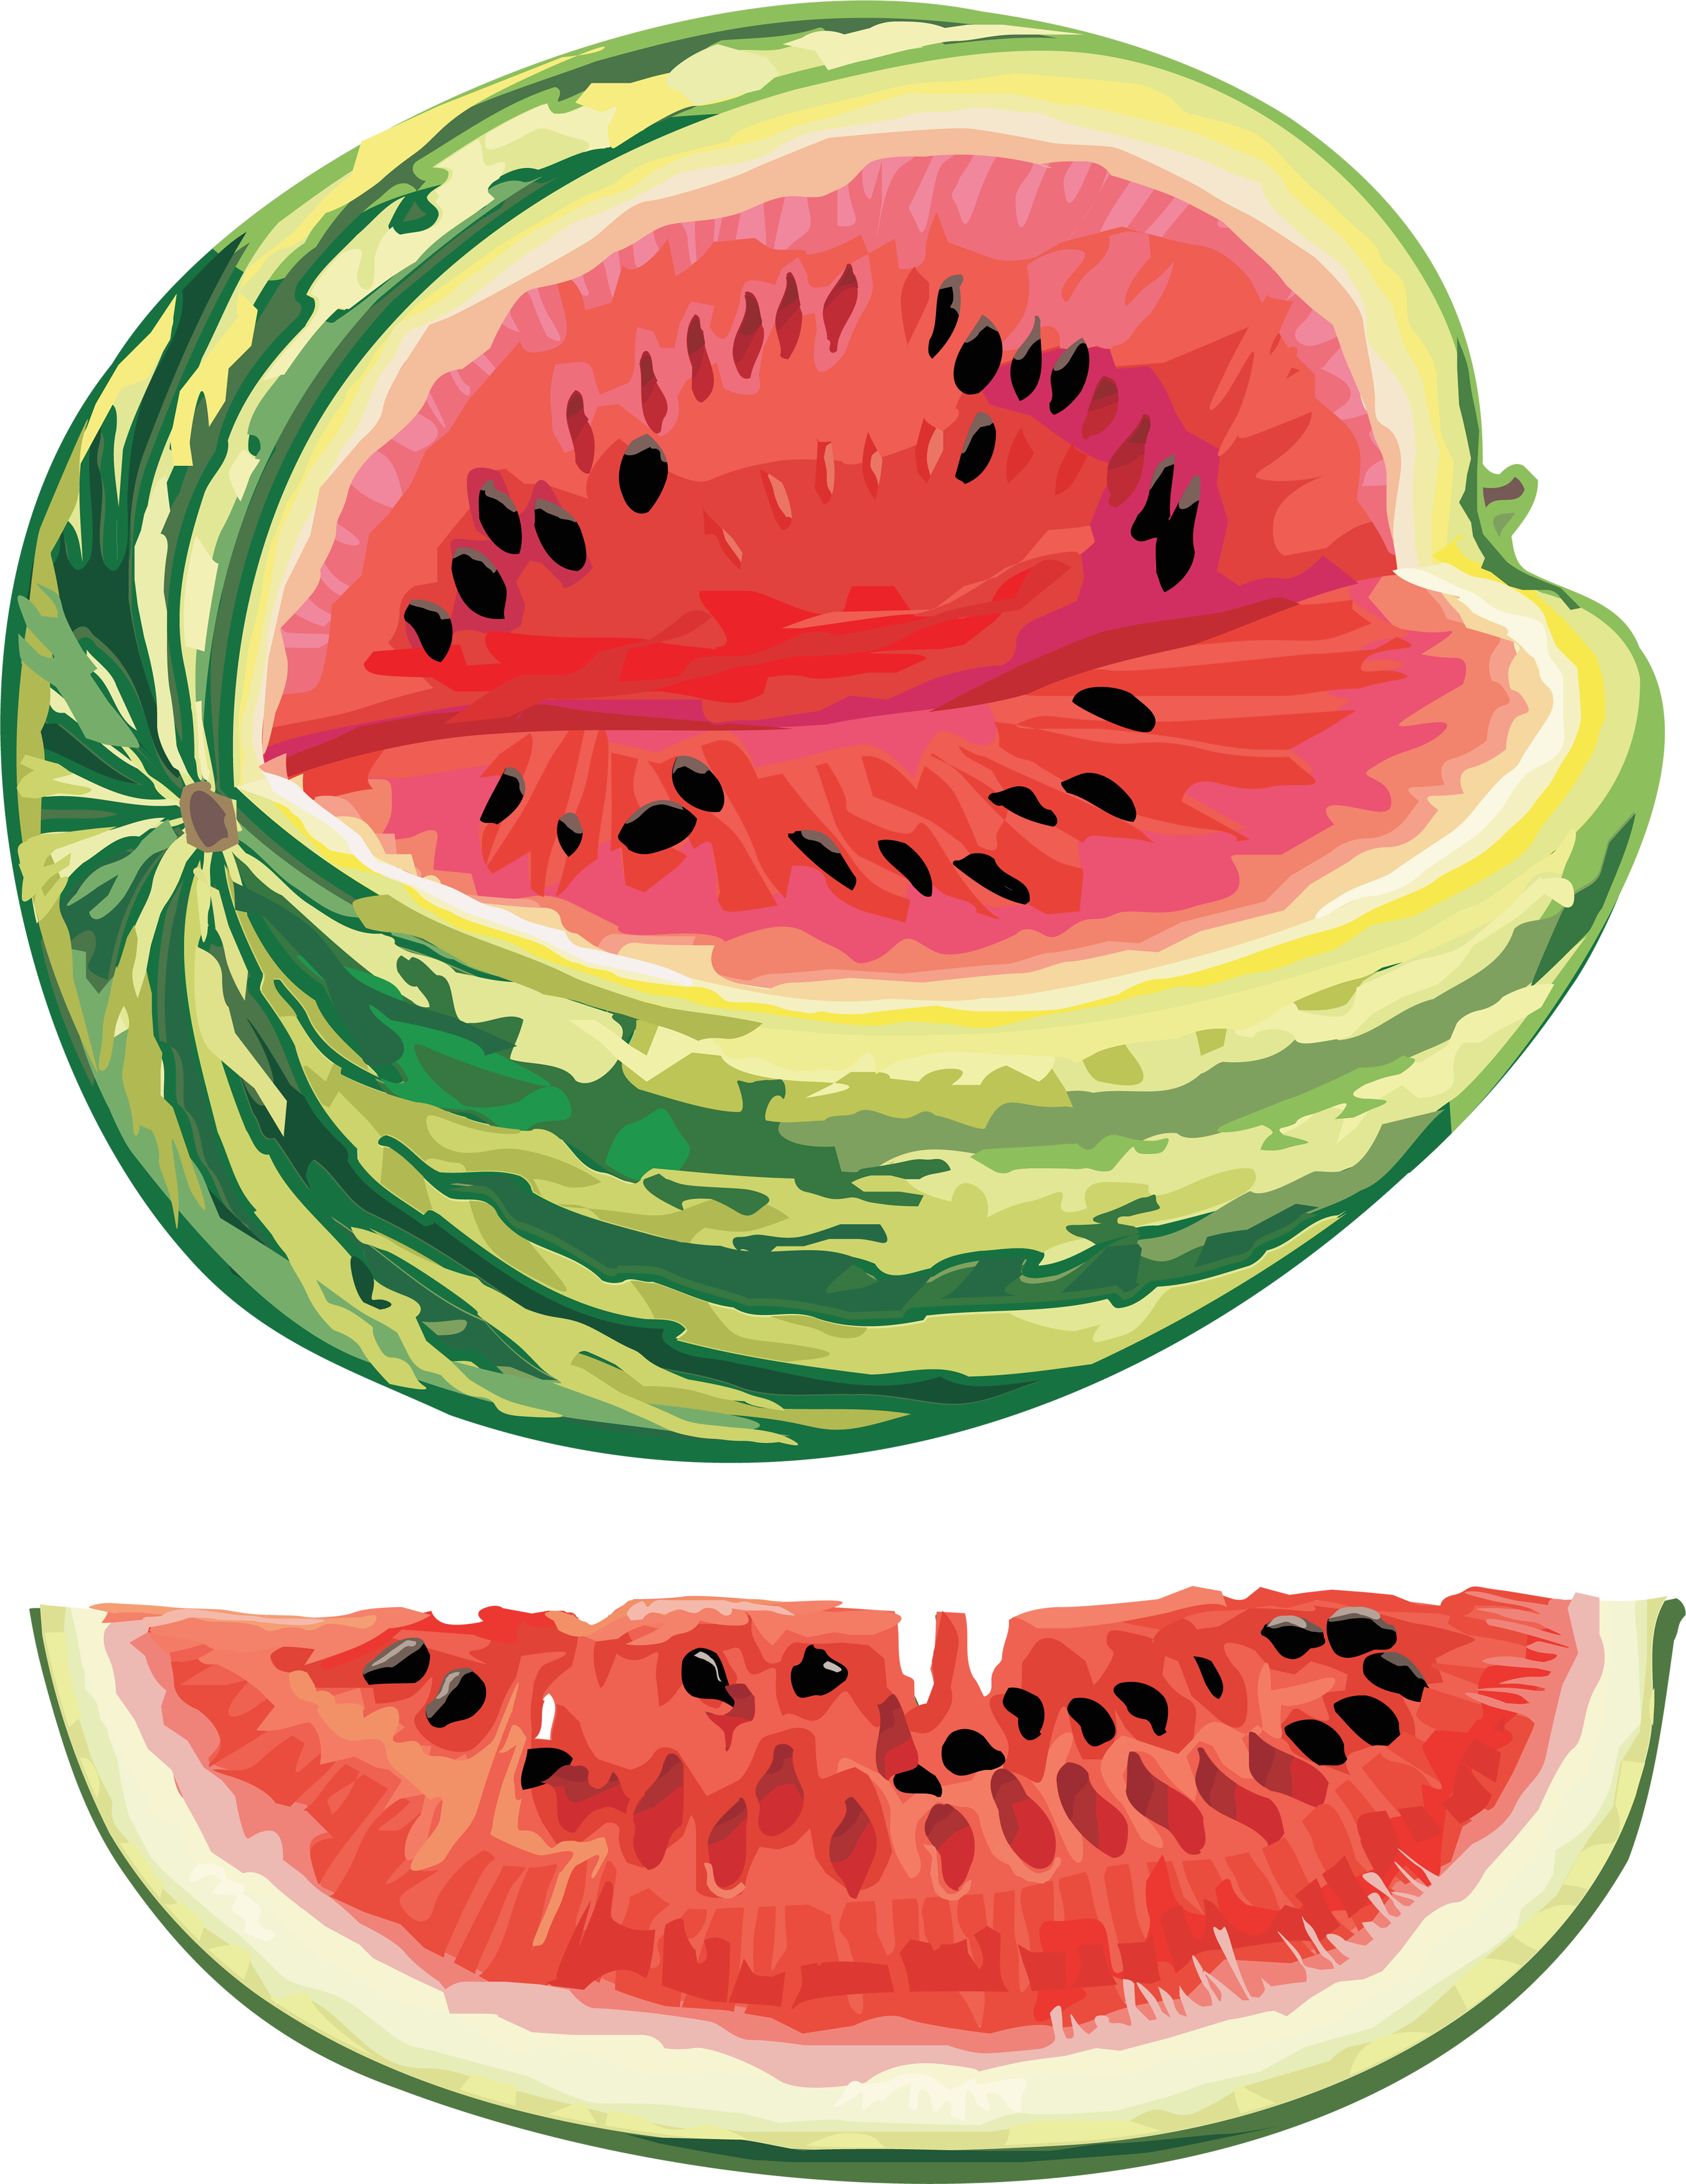 Watermelon clipart transparent background. Png image purepng free